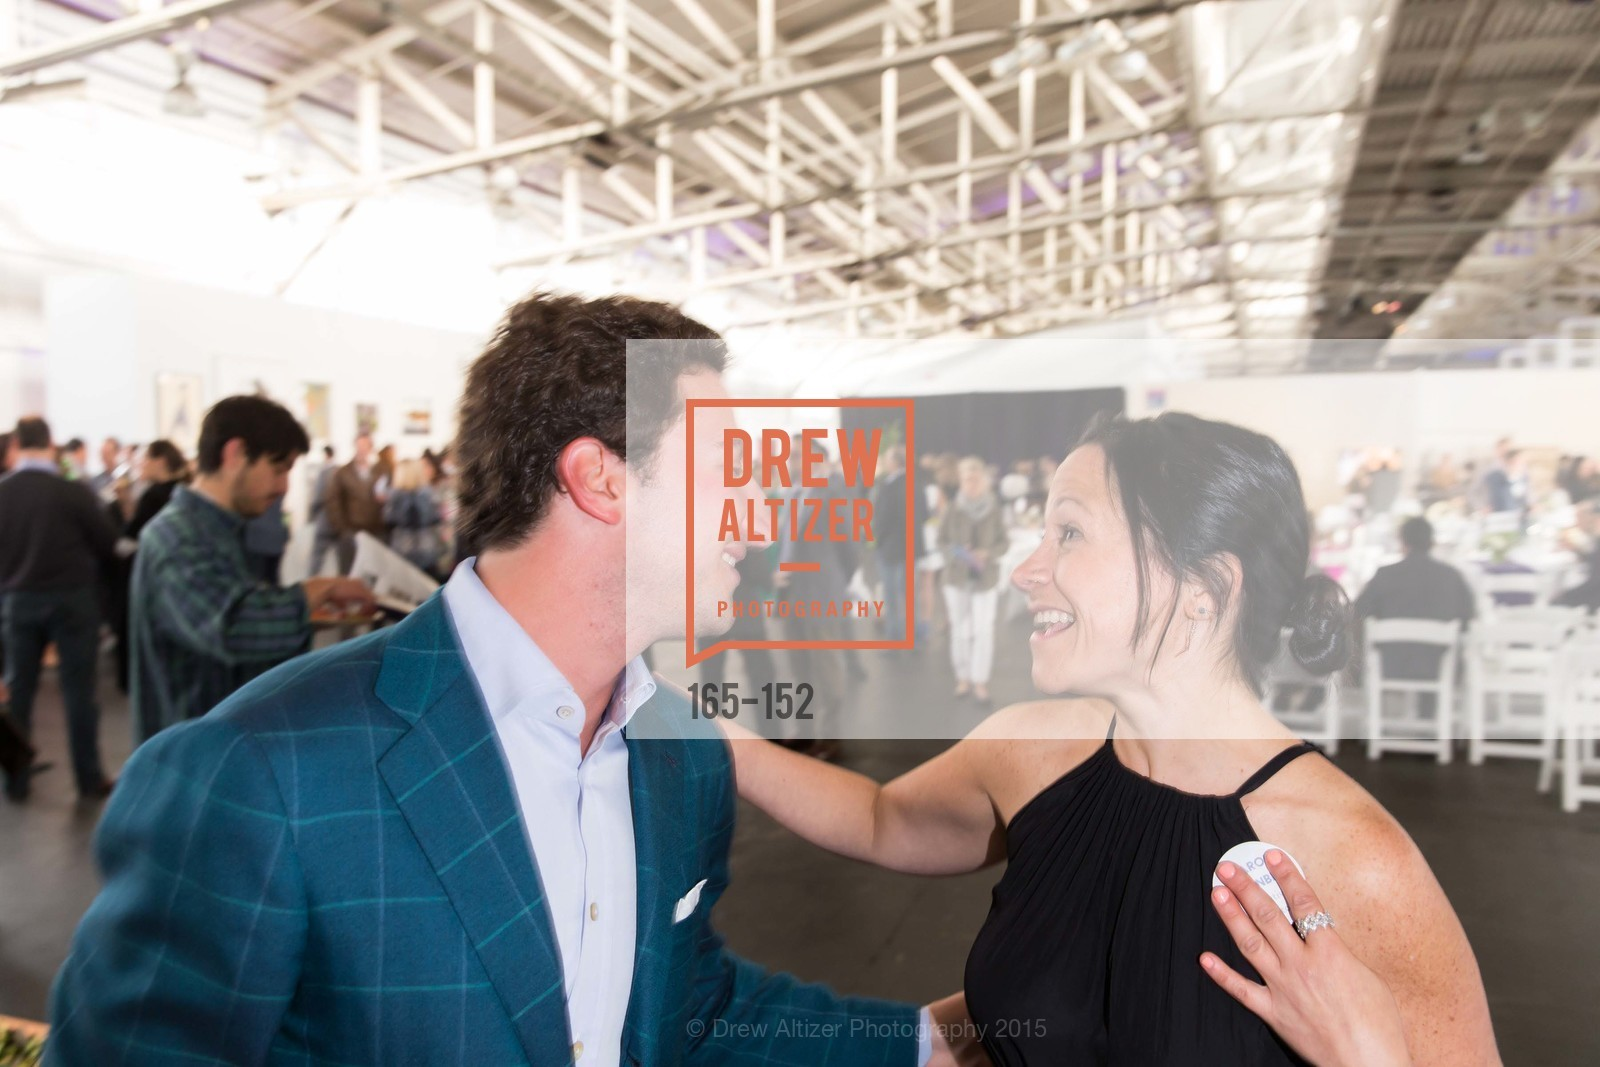 Jason Goldman, Sharon Maidenberg, Headlands Center for the Arts Benefit Auction, Fort Mason Festival, Pavilon, June 2nd, 2015,Drew Altizer, Drew Altizer Photography, full-service event agency, private events, San Francisco photographer, photographer California